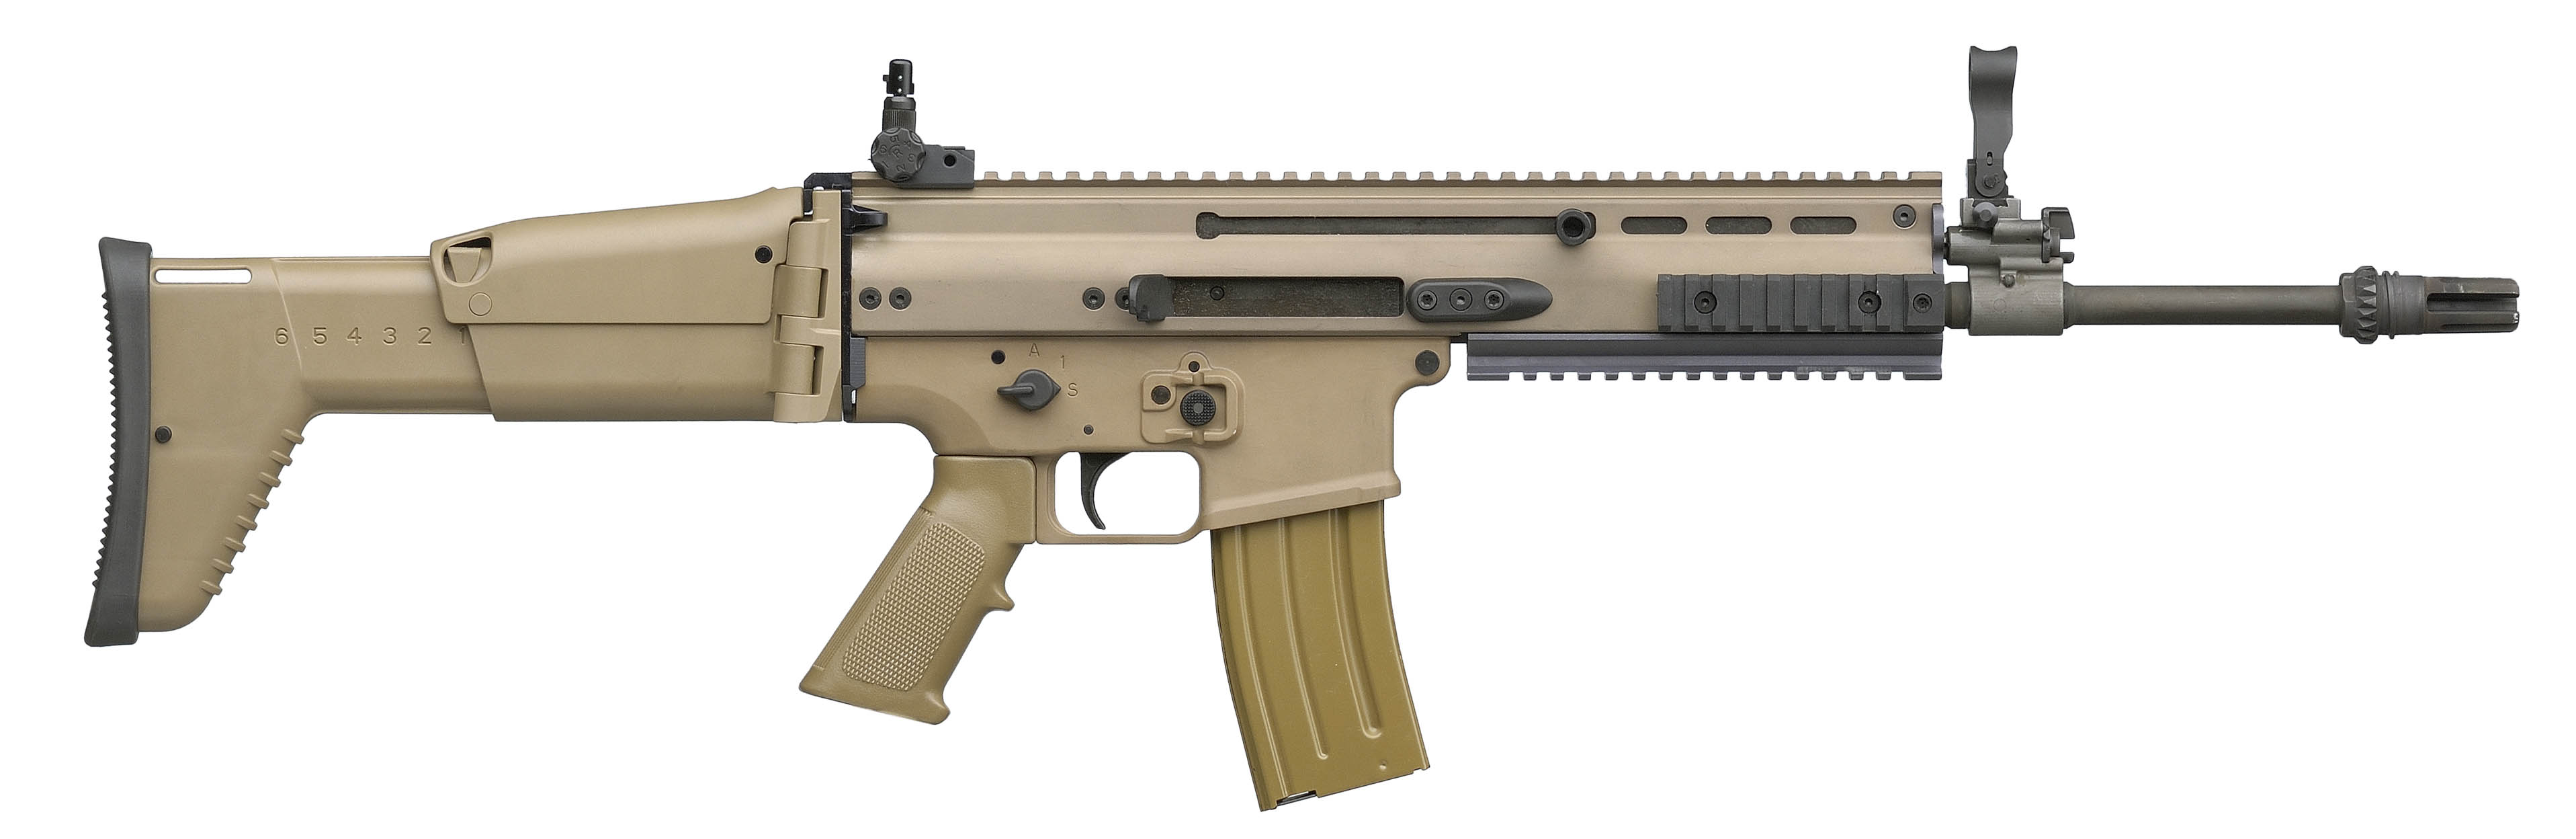 essays over pros and cons of assault weapons Gun control essays - the pros and cons of gun control the pros and cons of assault weapons essay examples - there are many views about gun control especially.